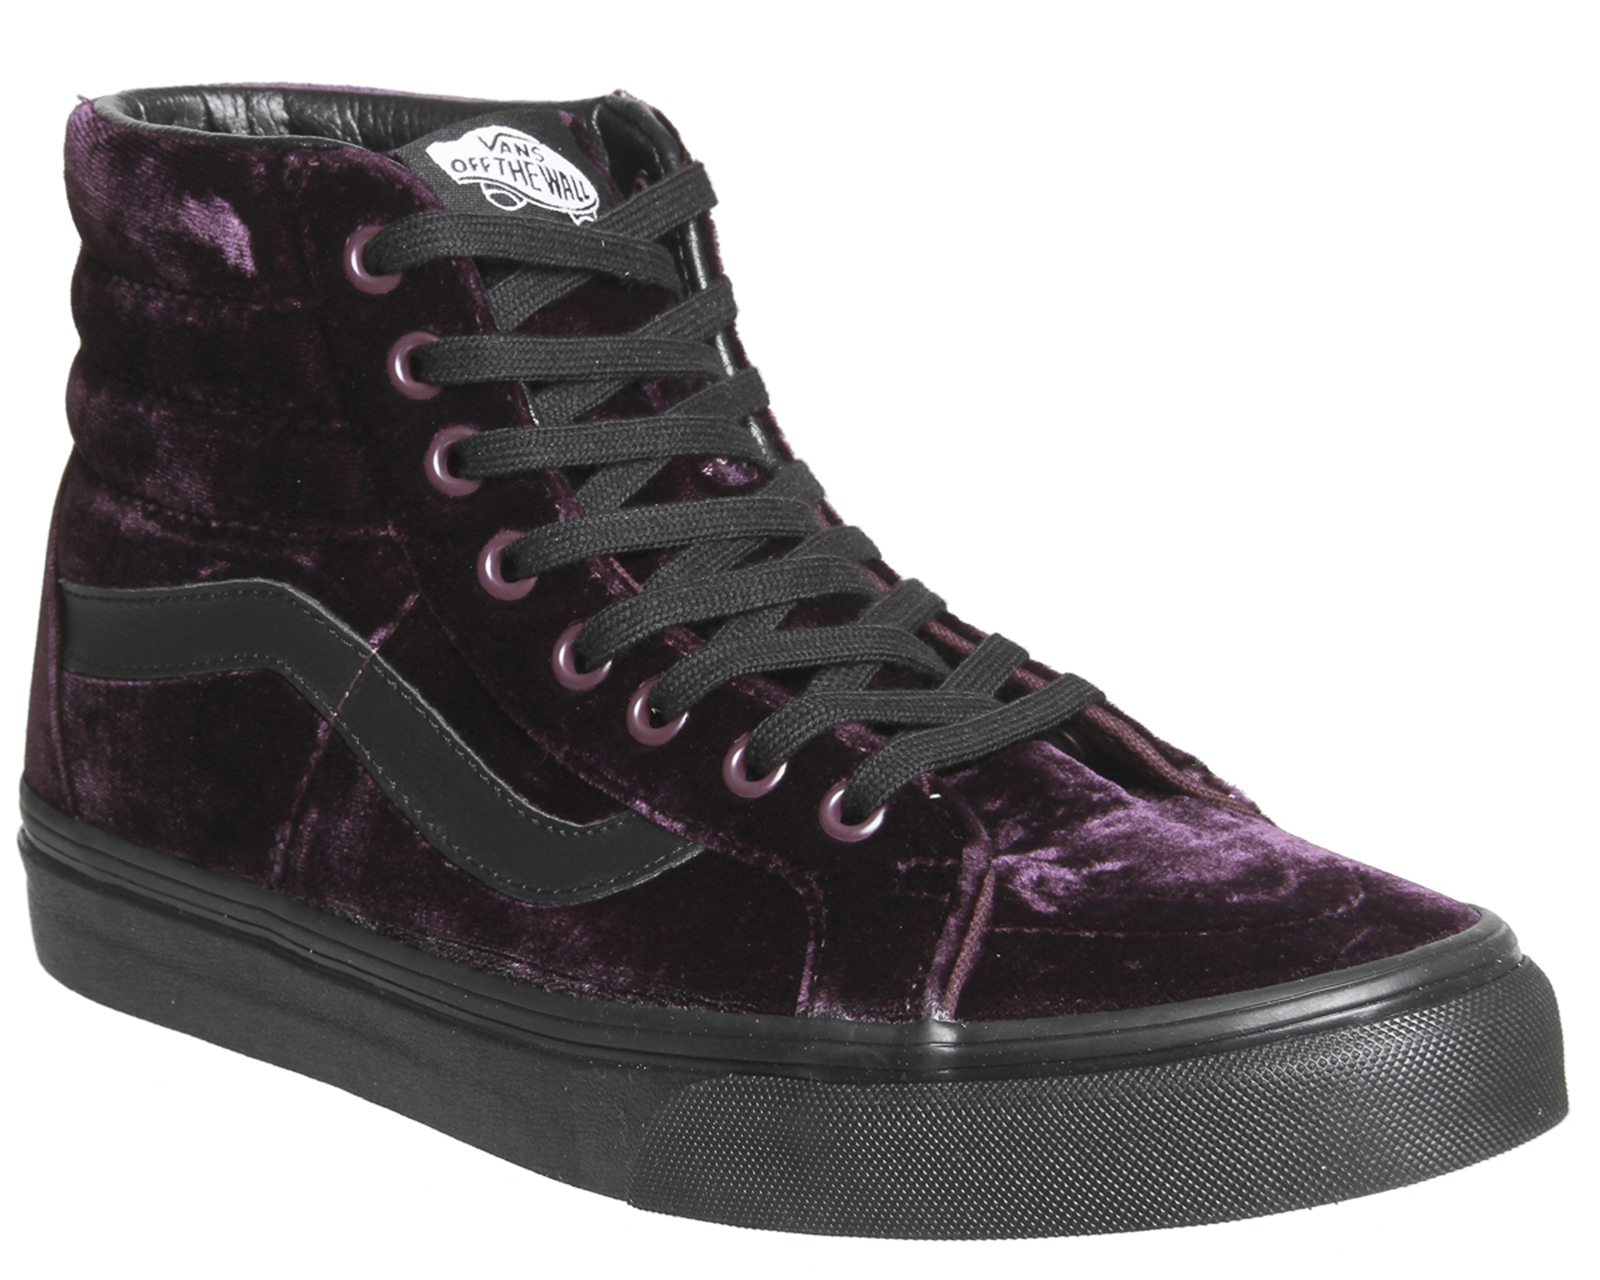 5d818912e4 Details about Womens Vans Sk8 Hi Reissue VELVET BURGUNDY BLACK Trainers  Shoes